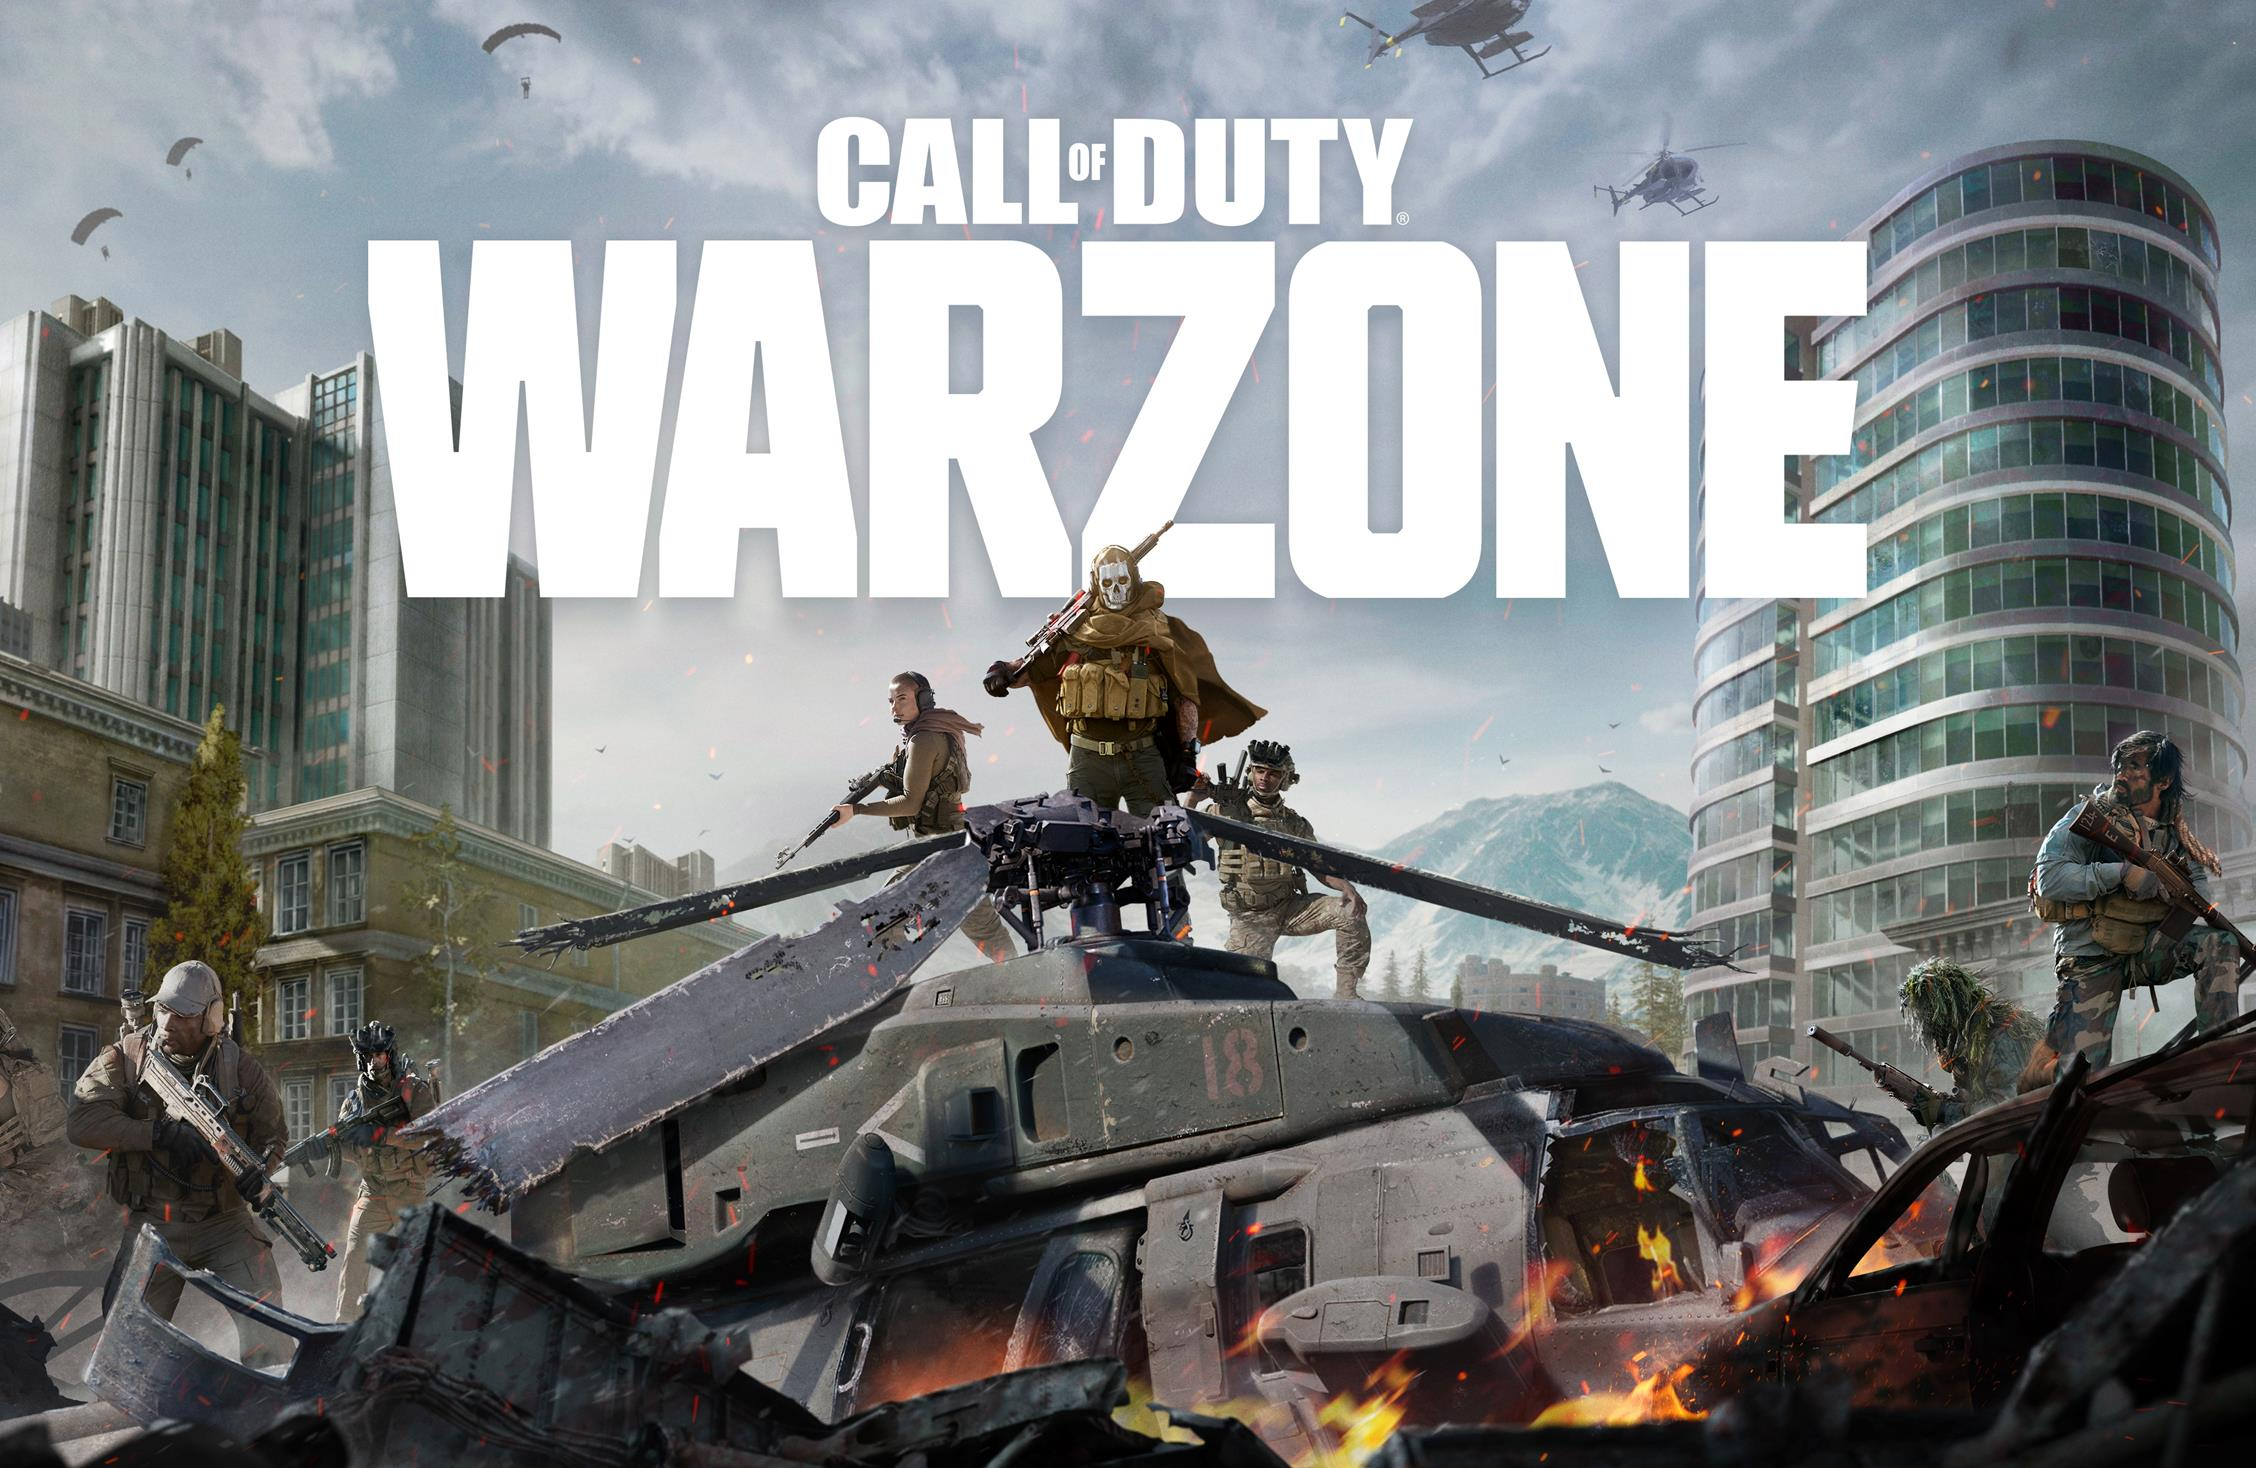 How Call of Duty: Warzone Has Helped Me Connect In The Time of Social Distancing